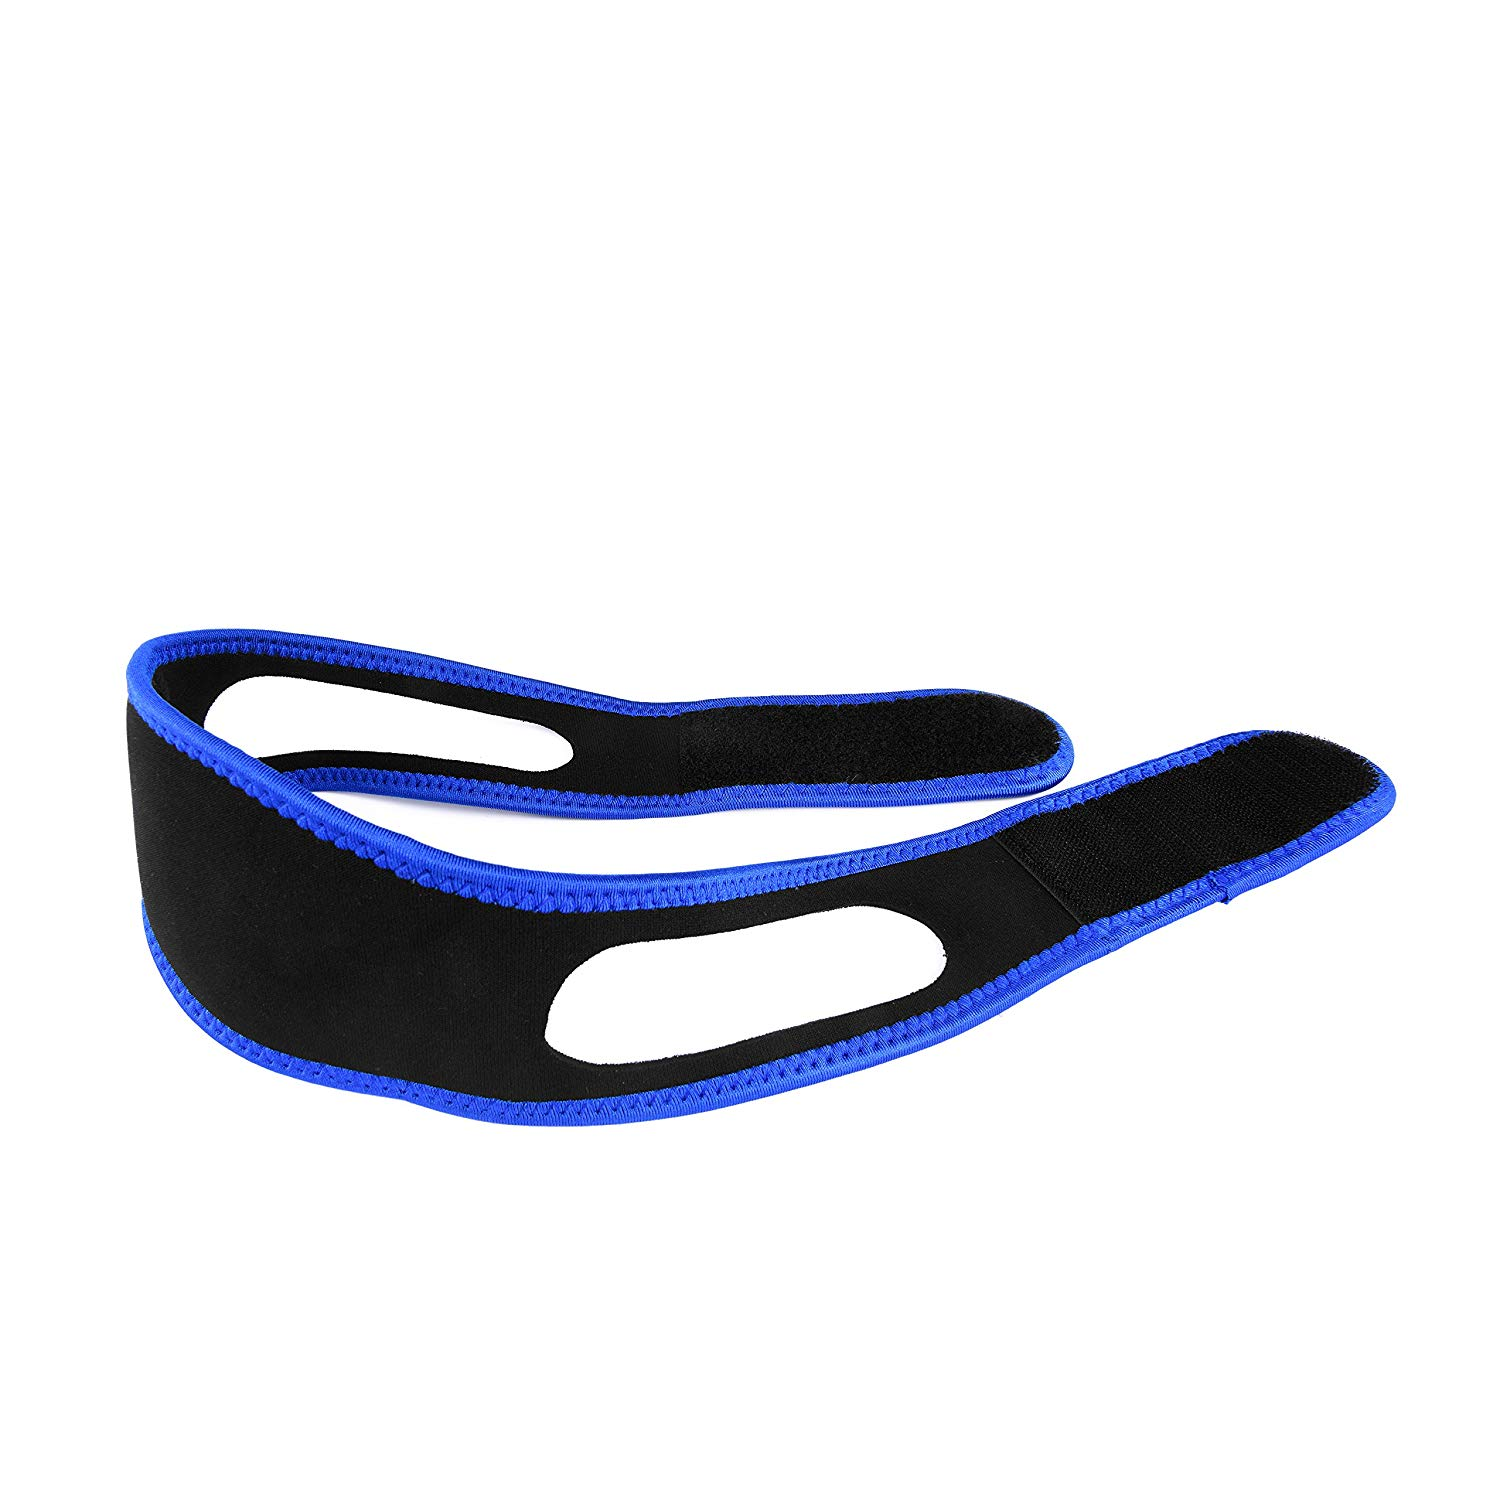 Images of Chin Strap For Snoring Walgreens - #rock-cafe